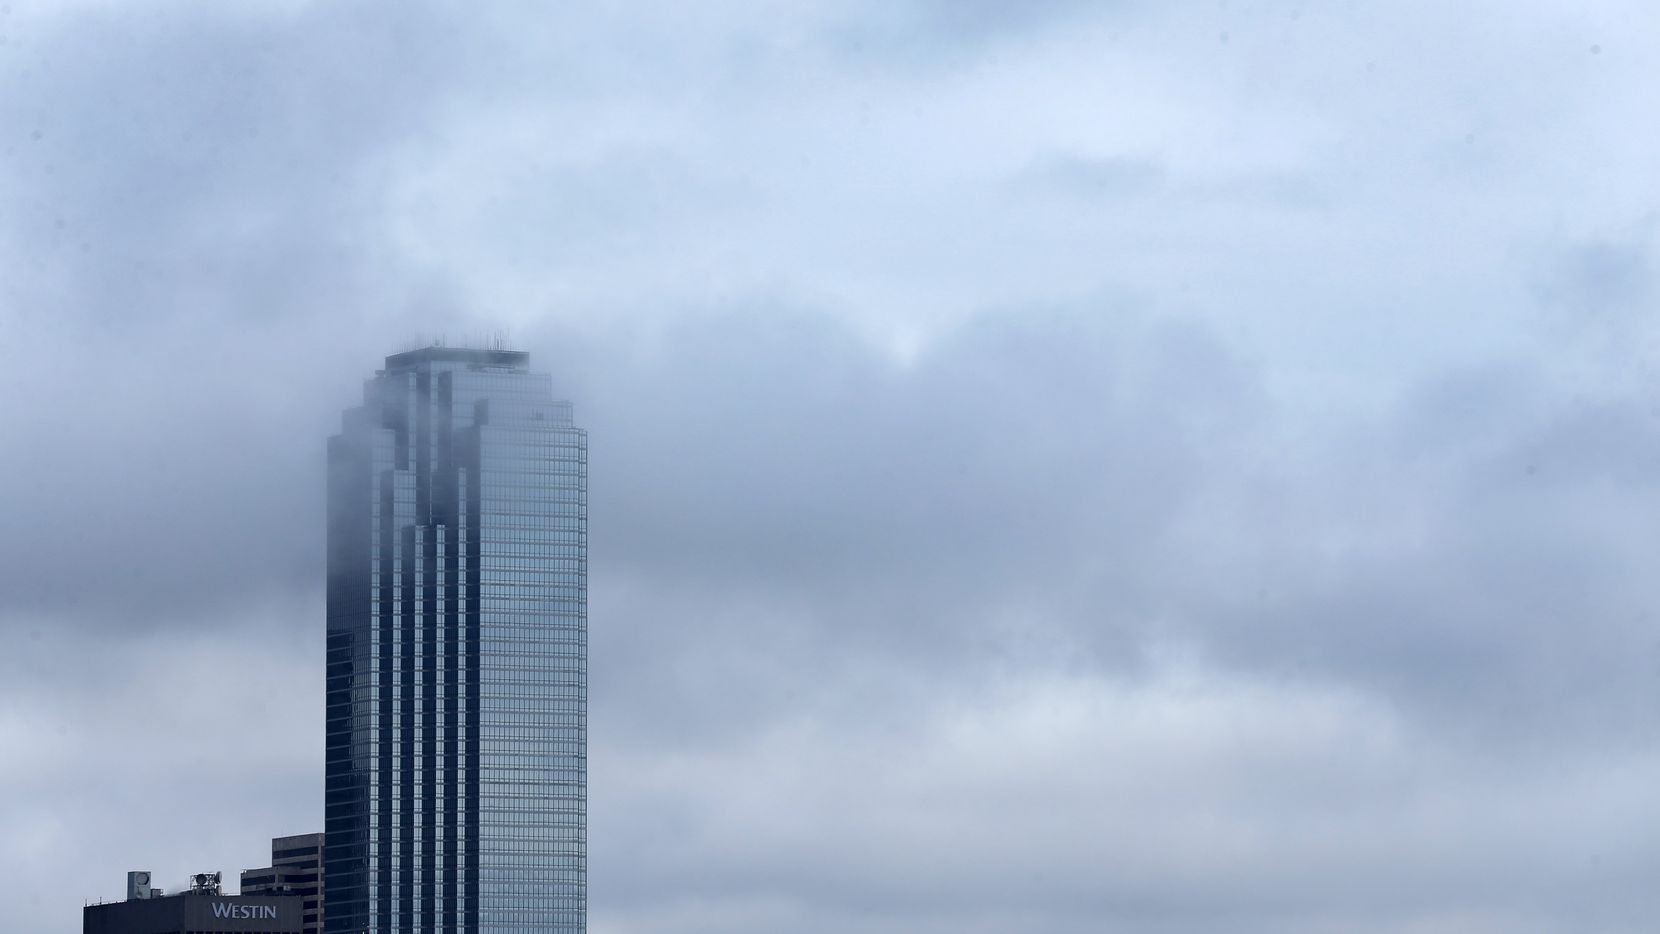 Lingering clouds drifted past the Bank of America building in downtown Dallas last weekend.